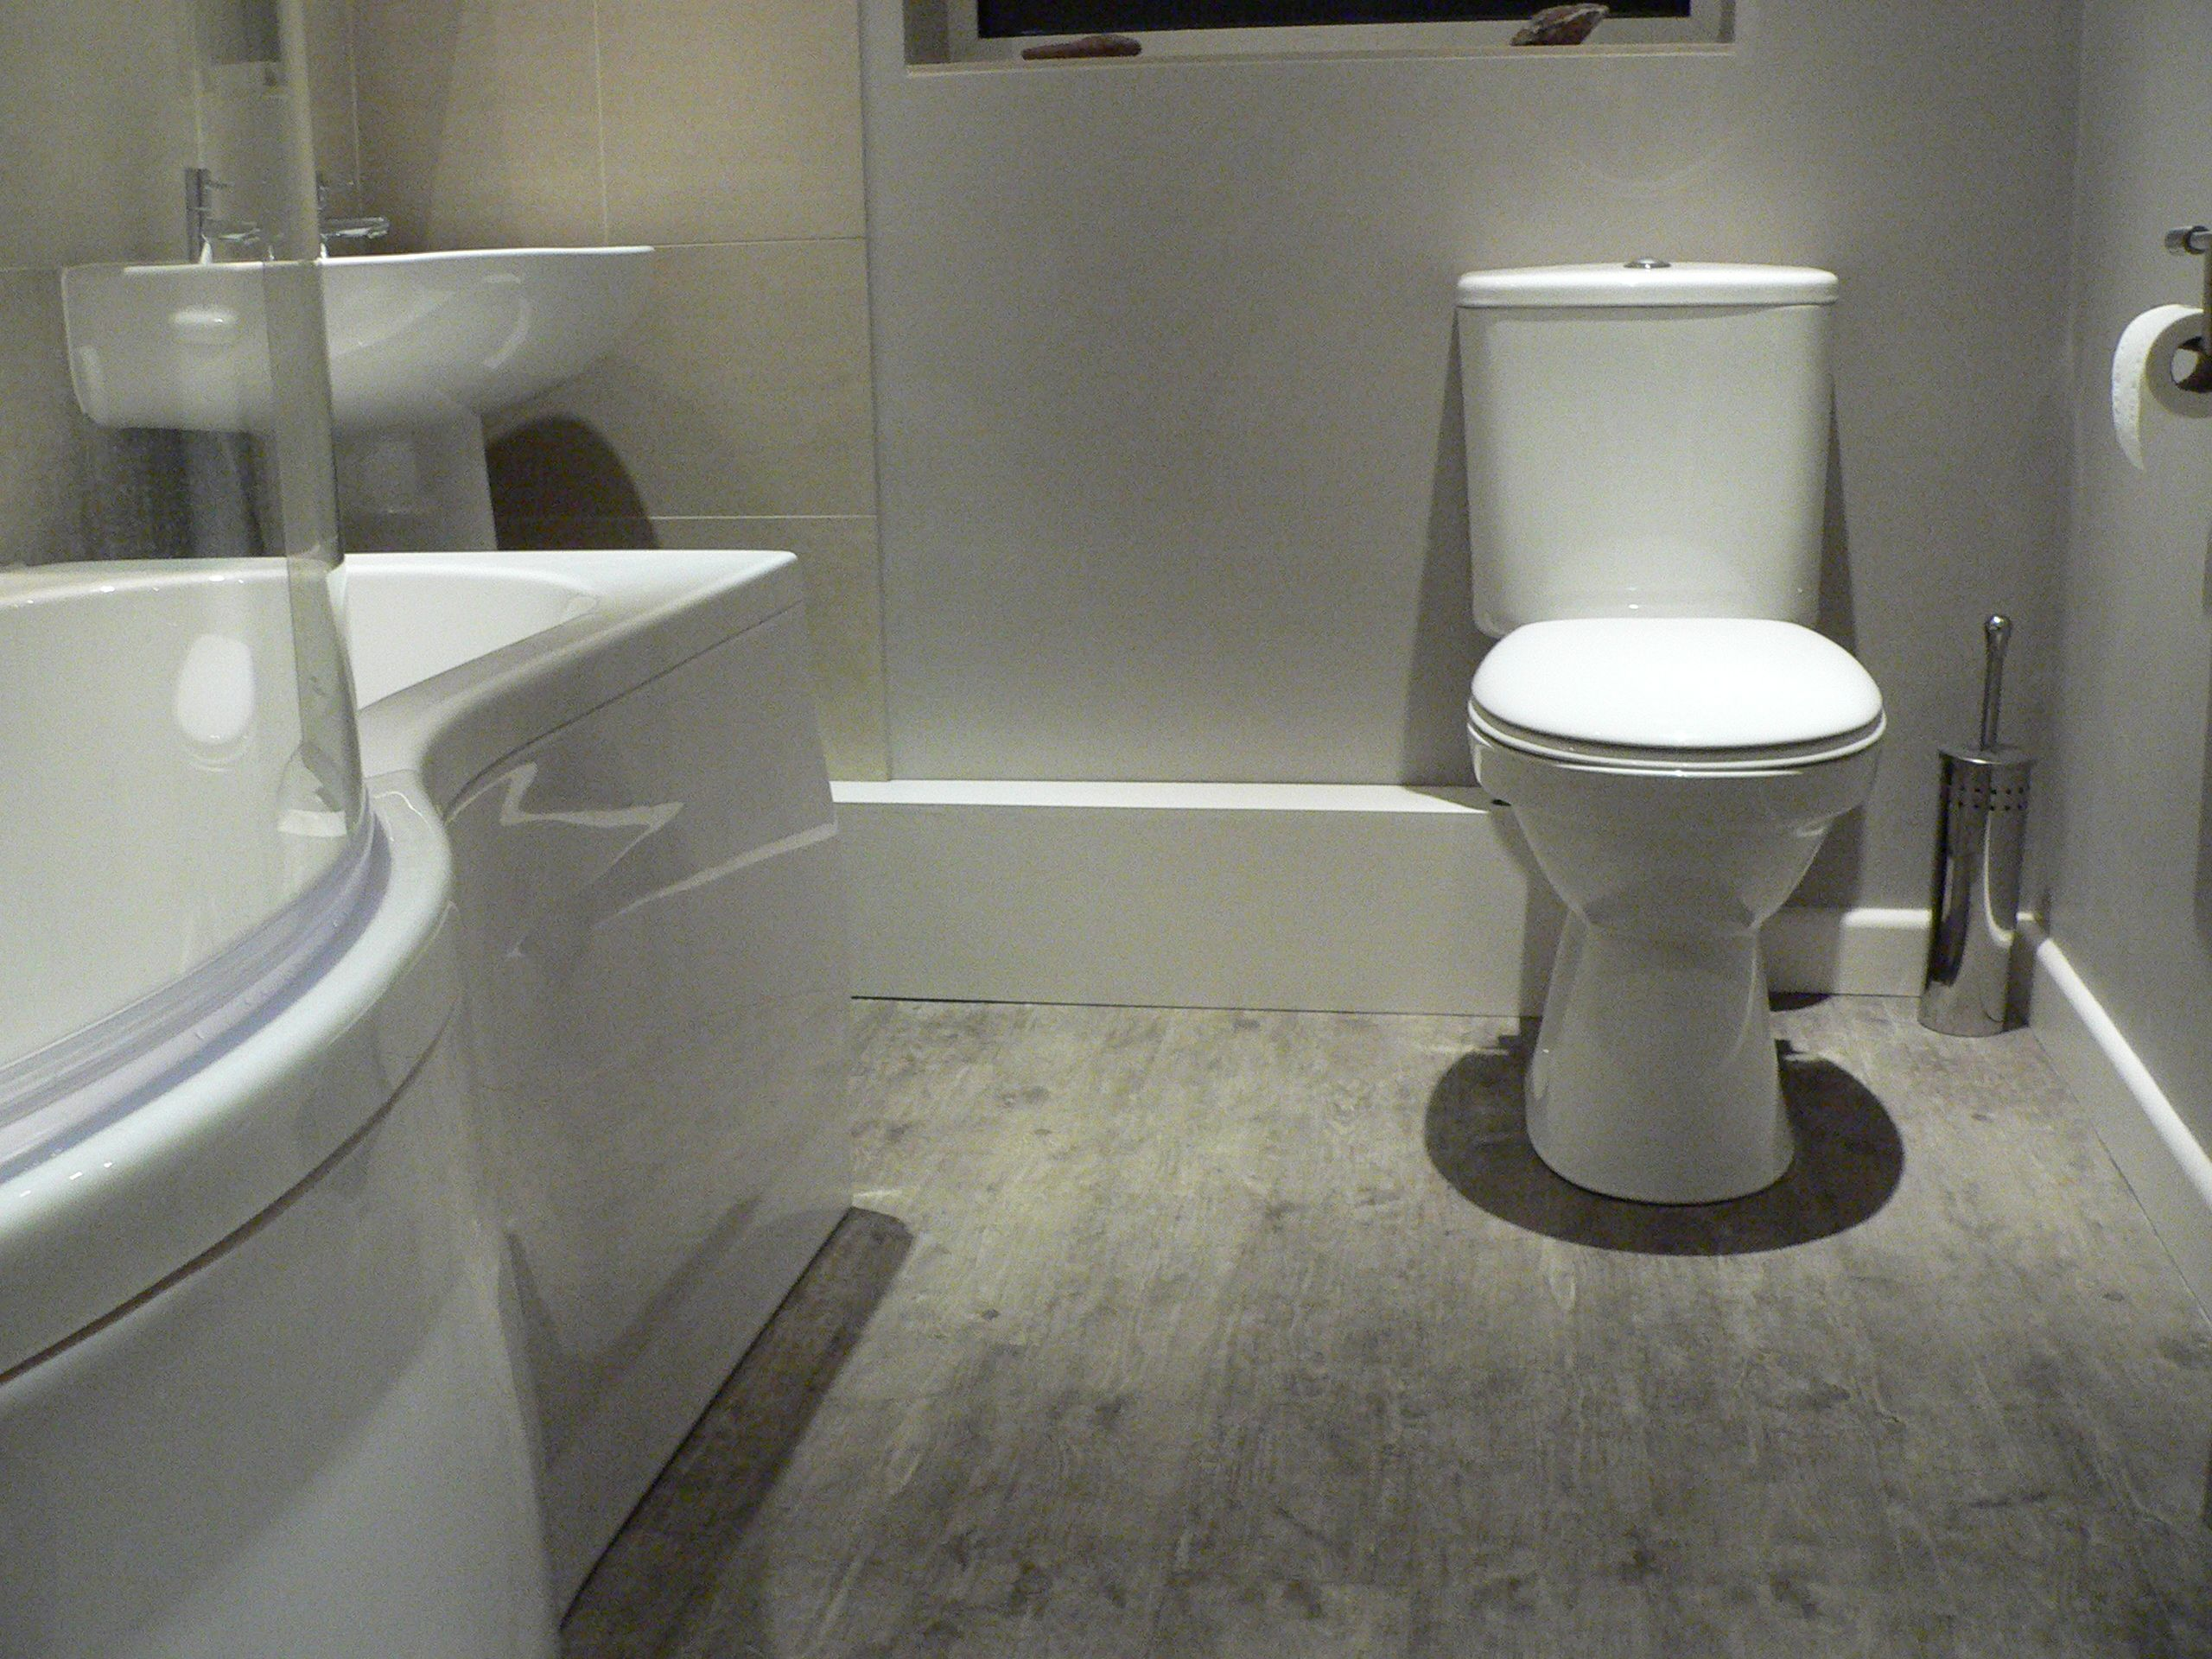 Karndean flooring, new bathroom suite (With images ...